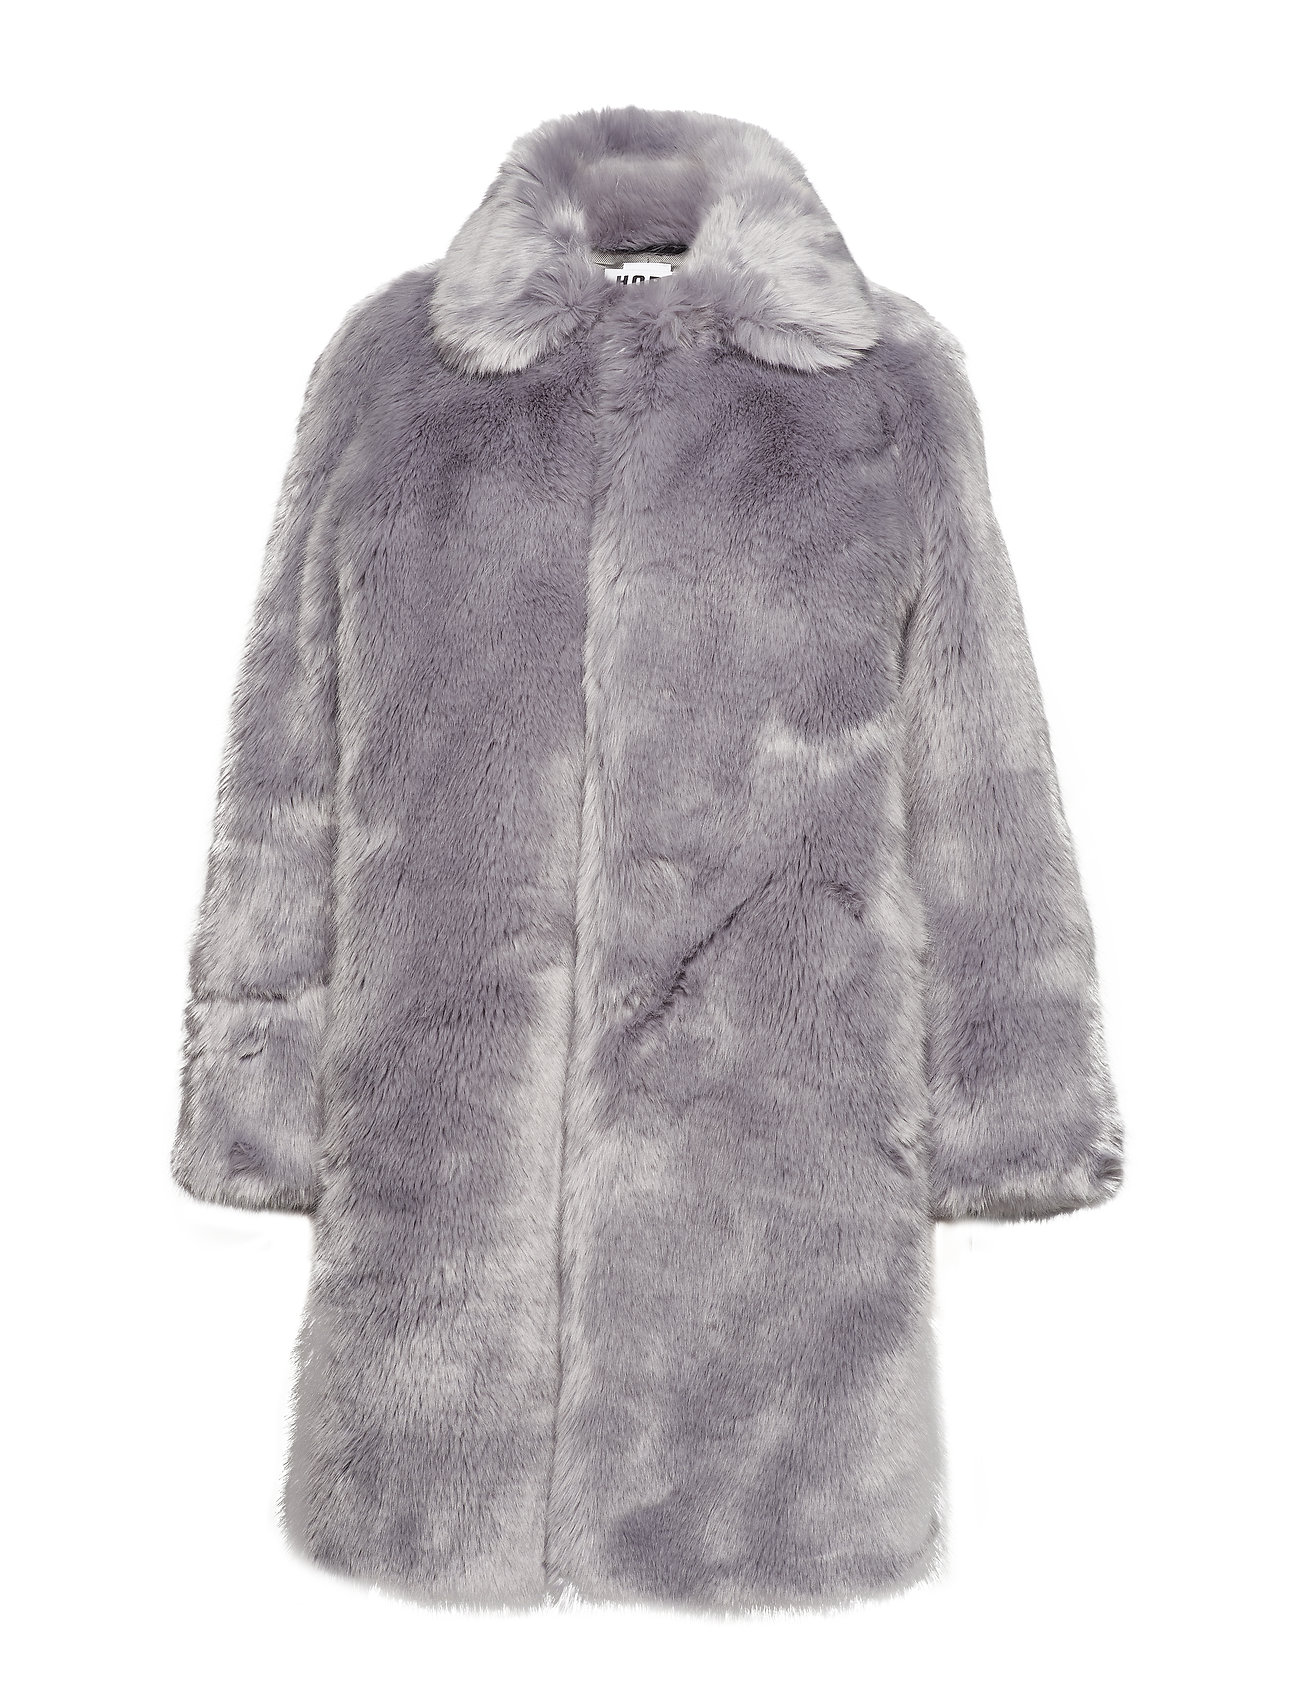 Hope Viva Fur Coat - BLUE GREY